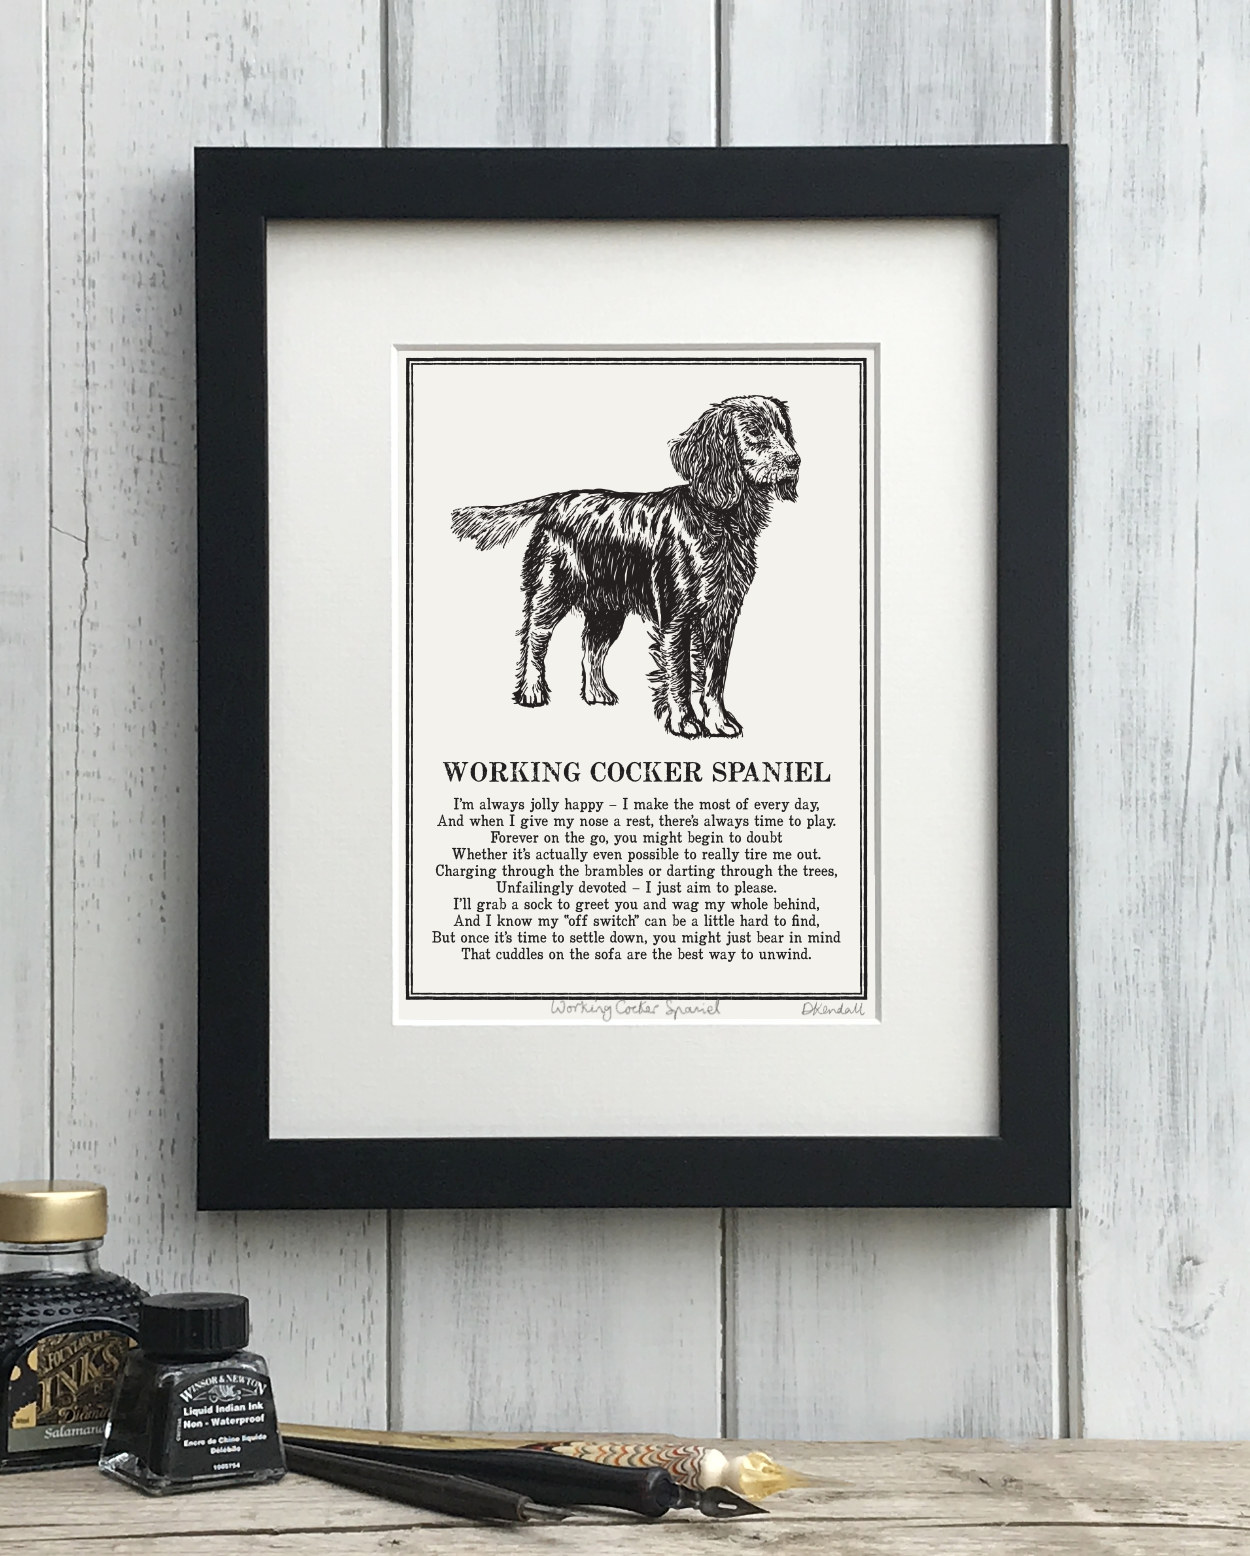 Working Cocker Spaniel Doggerel Print